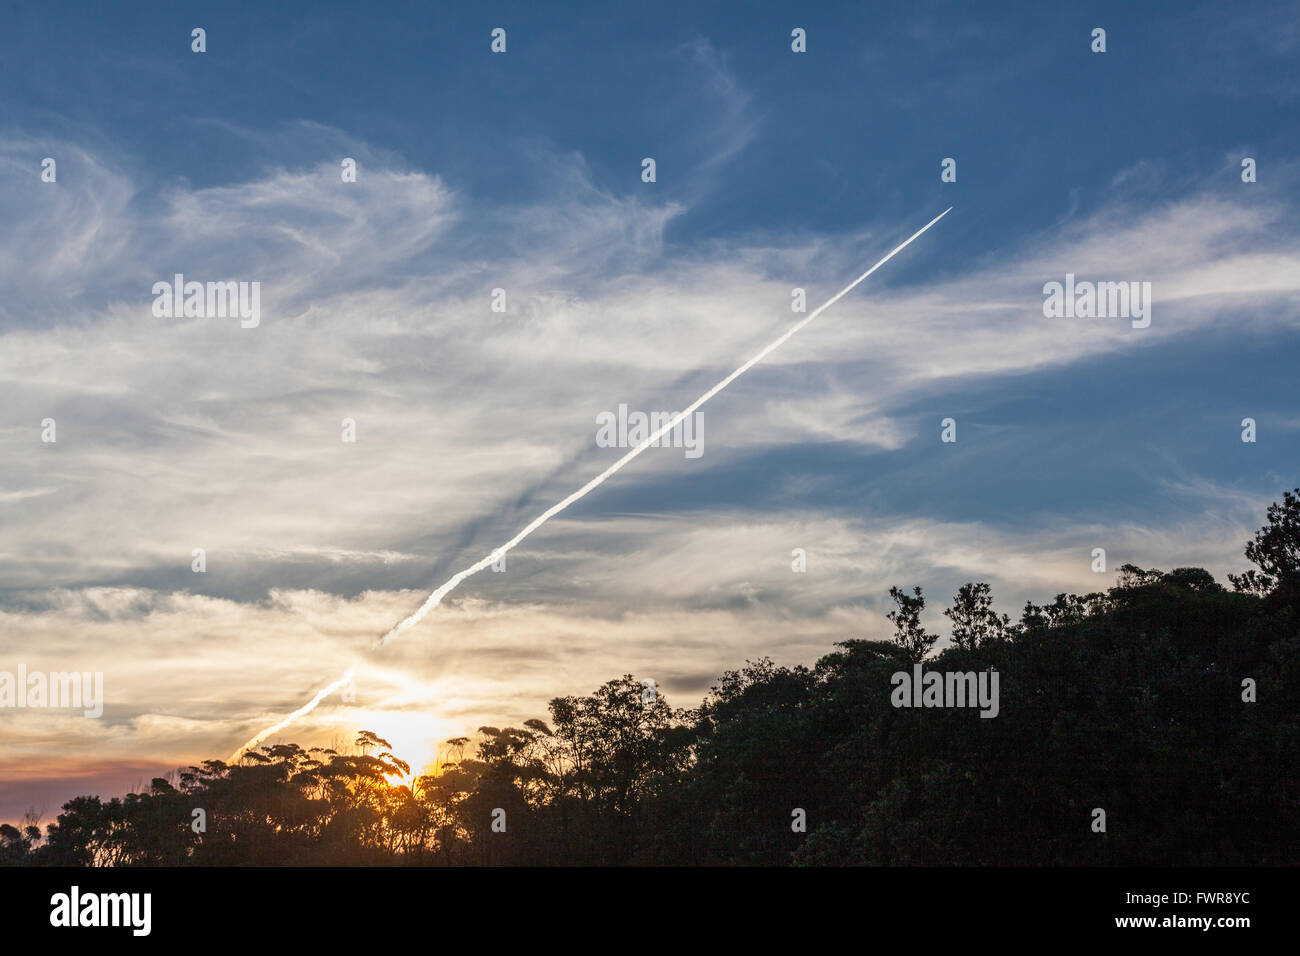 Diagonal jet plane trail in the sky at sunset with silhouettes of Australian coastal vegetation - Stock Image